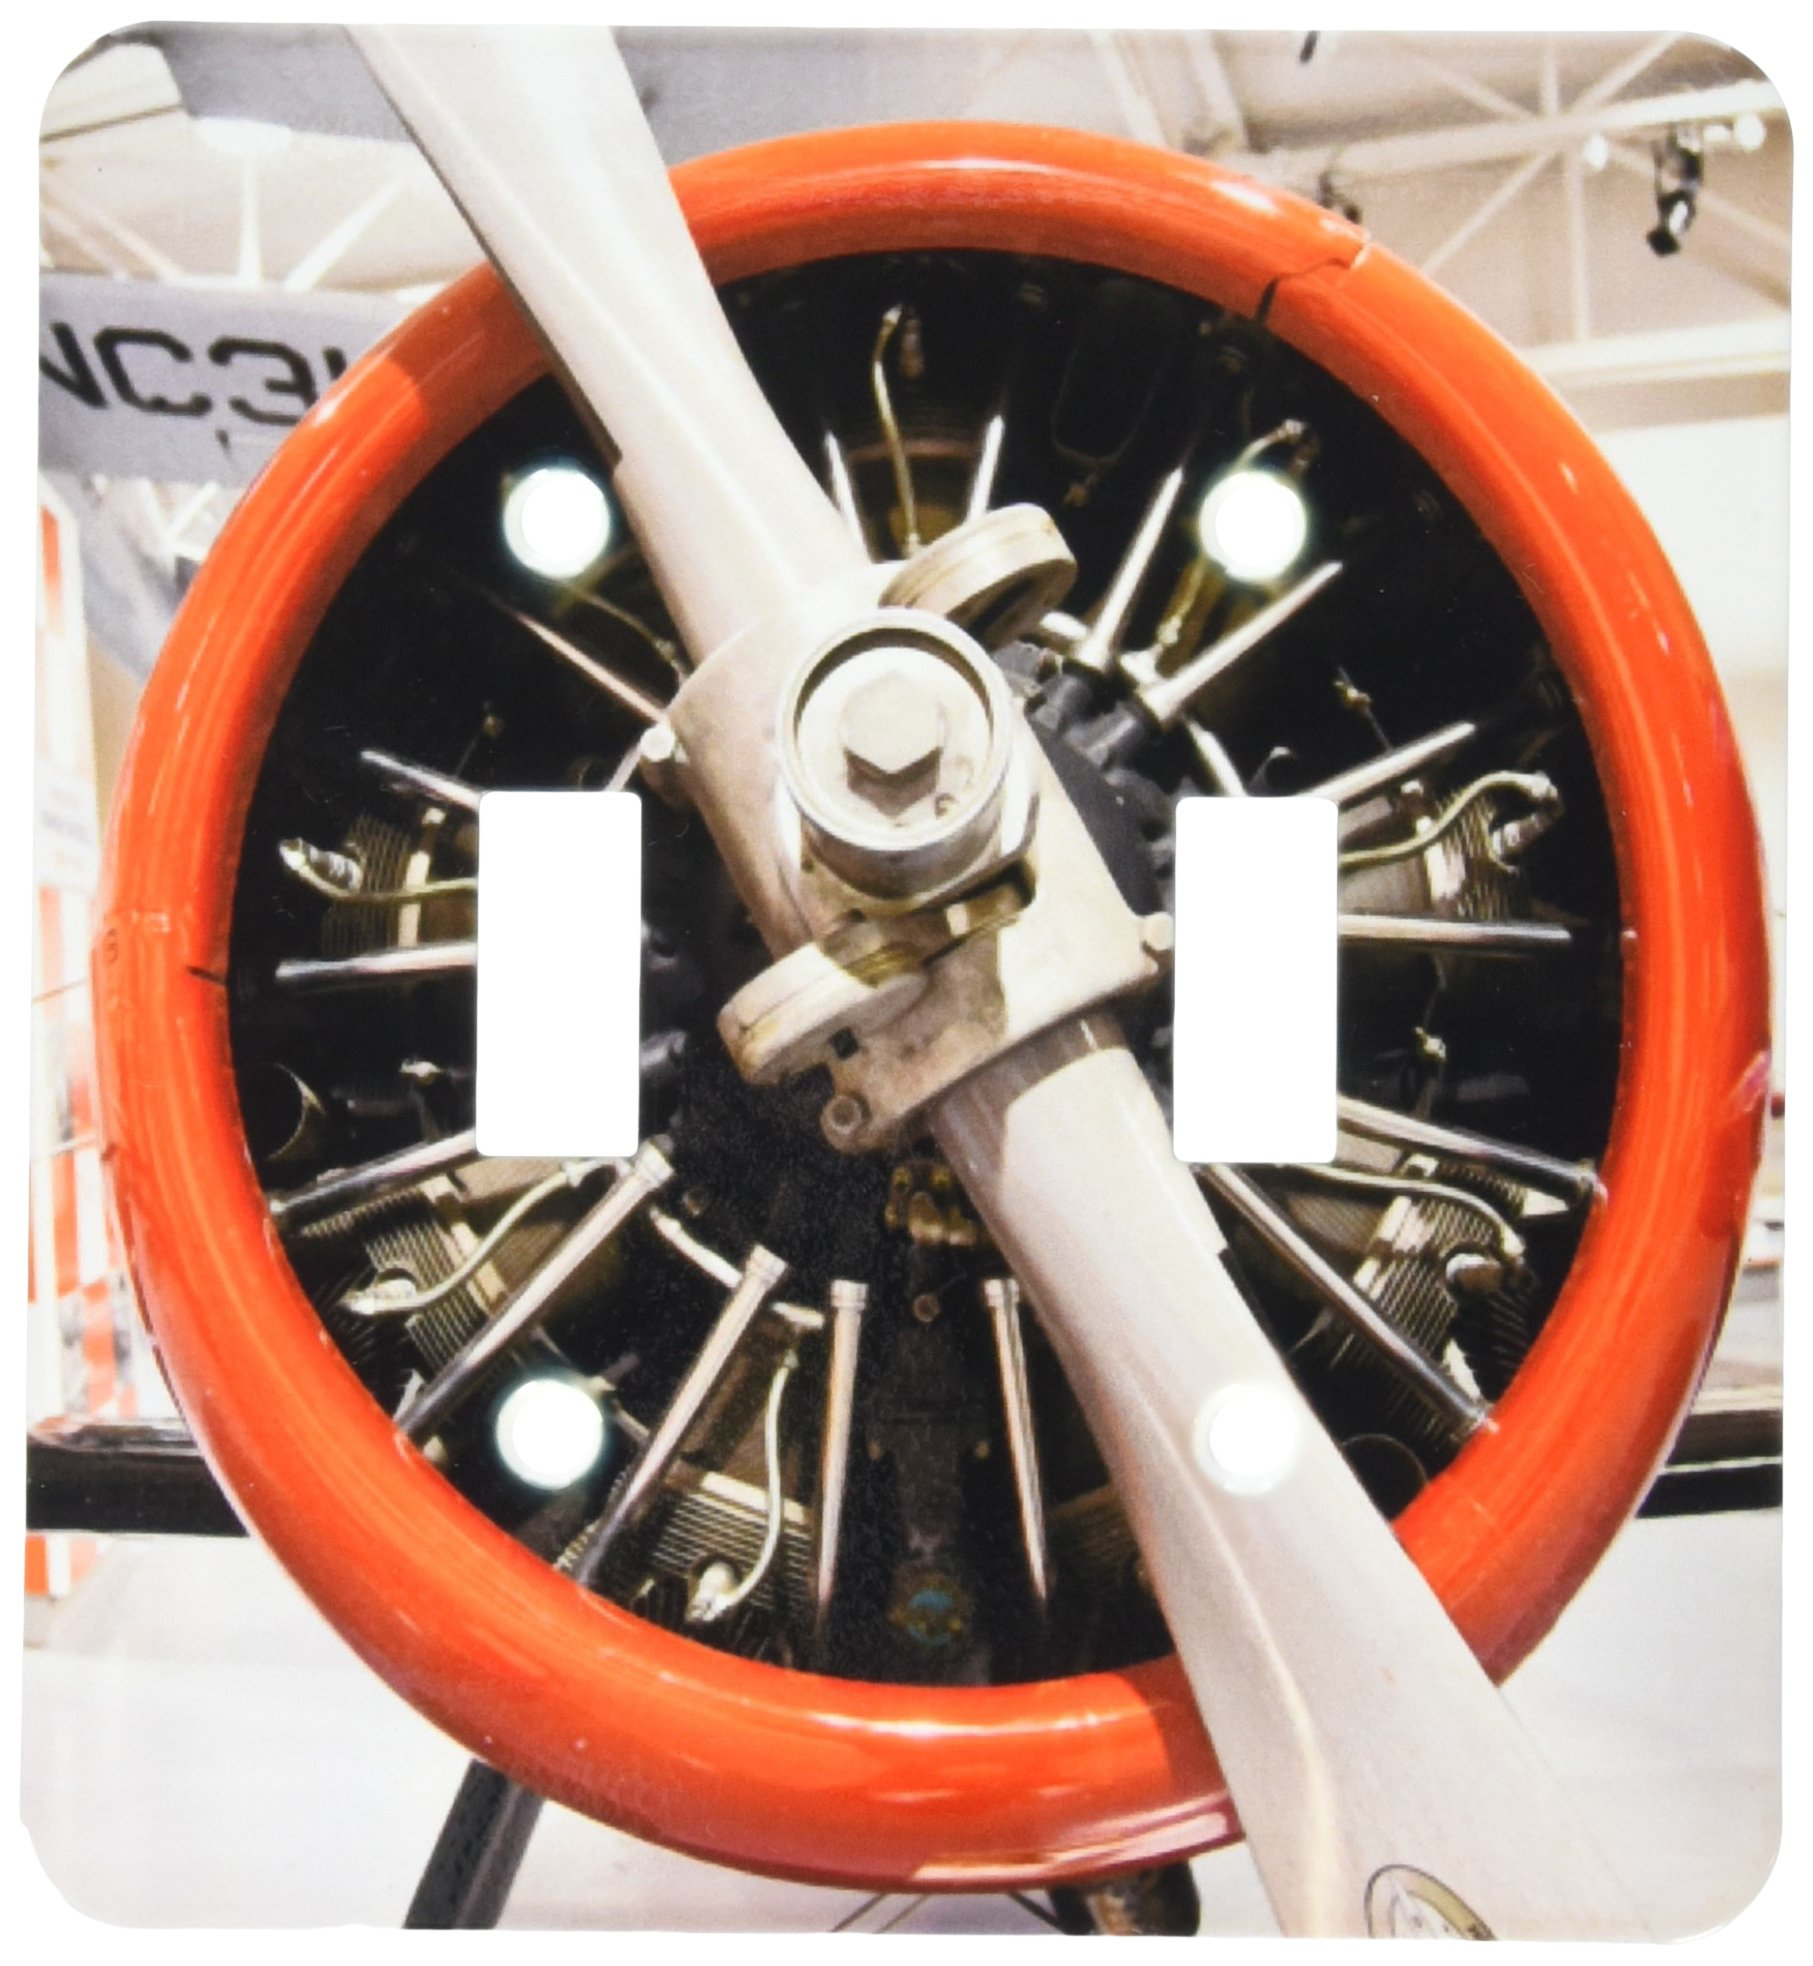 3dRose lsp_90512_2 Weddel-Williams Air Racing Museum, Aviation Us19 Wbi0320 Walter Bibikow Light Switch Cover